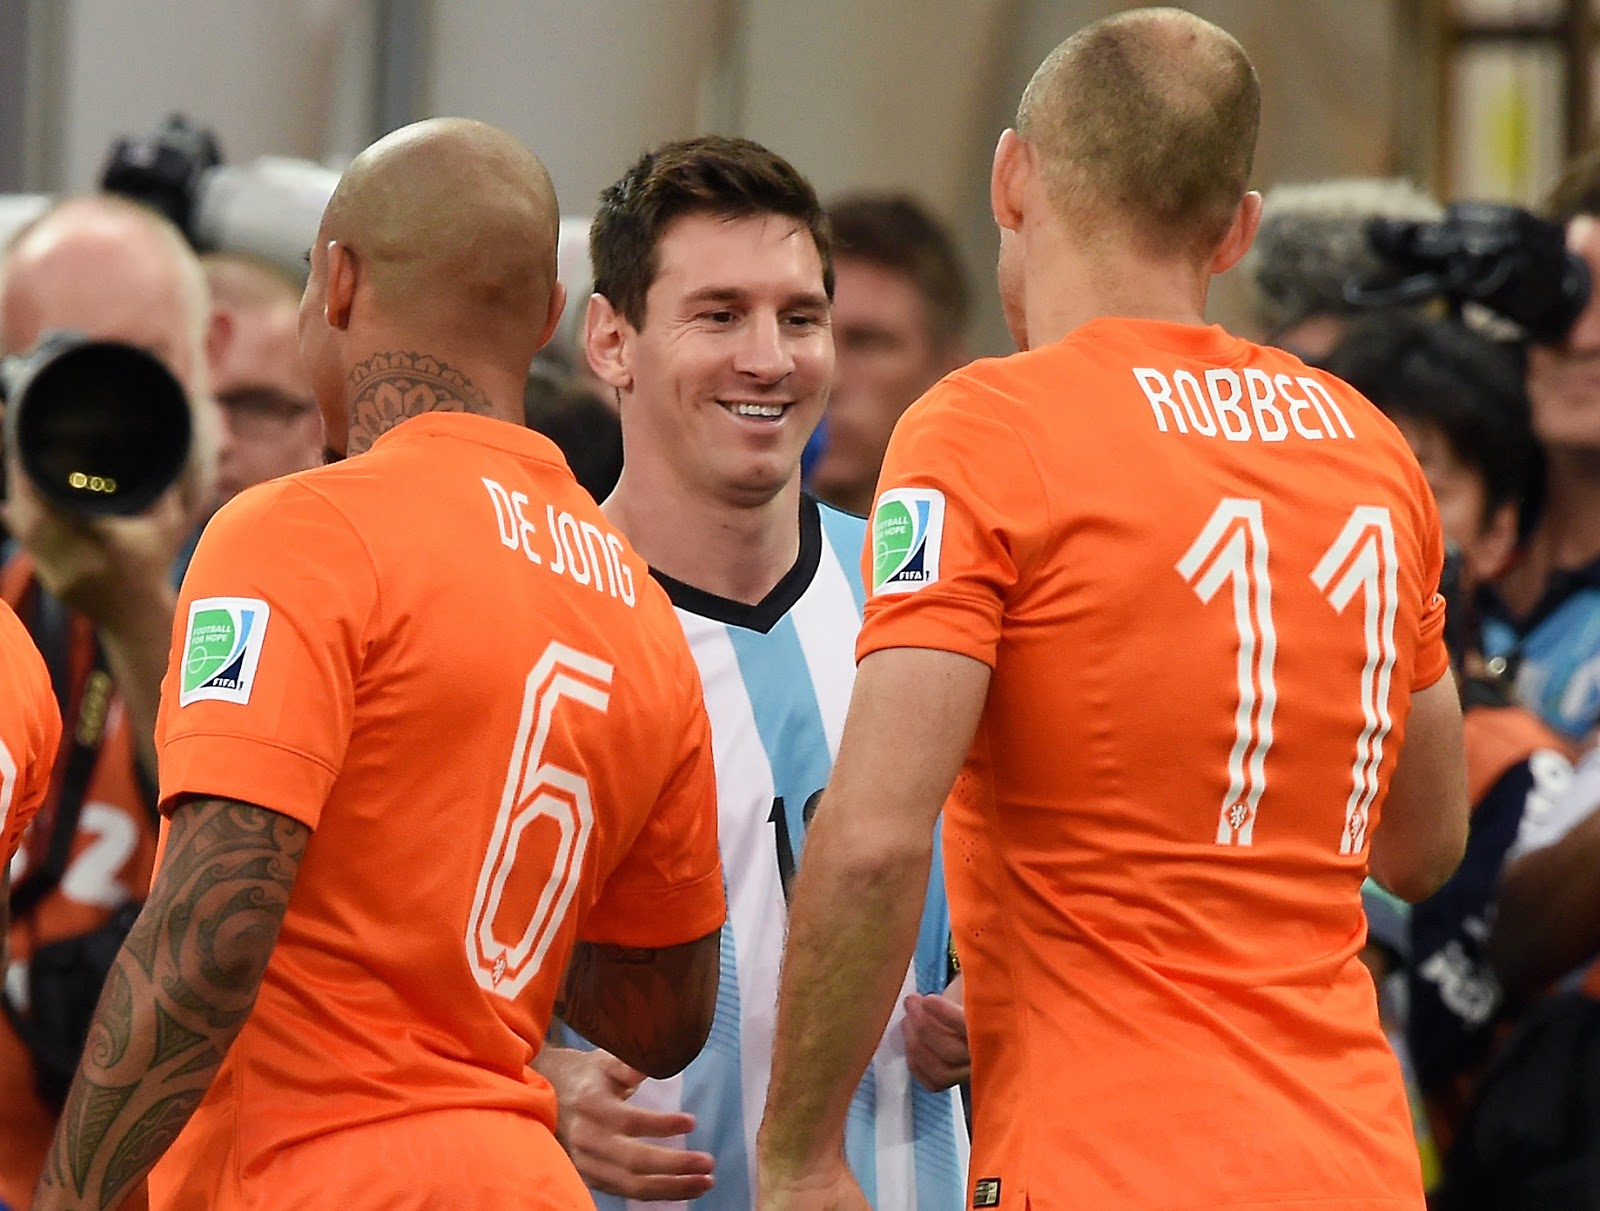 FIFA World Cup 2014: Argentina vs Netherlands Second Semi-final Match in Pictures